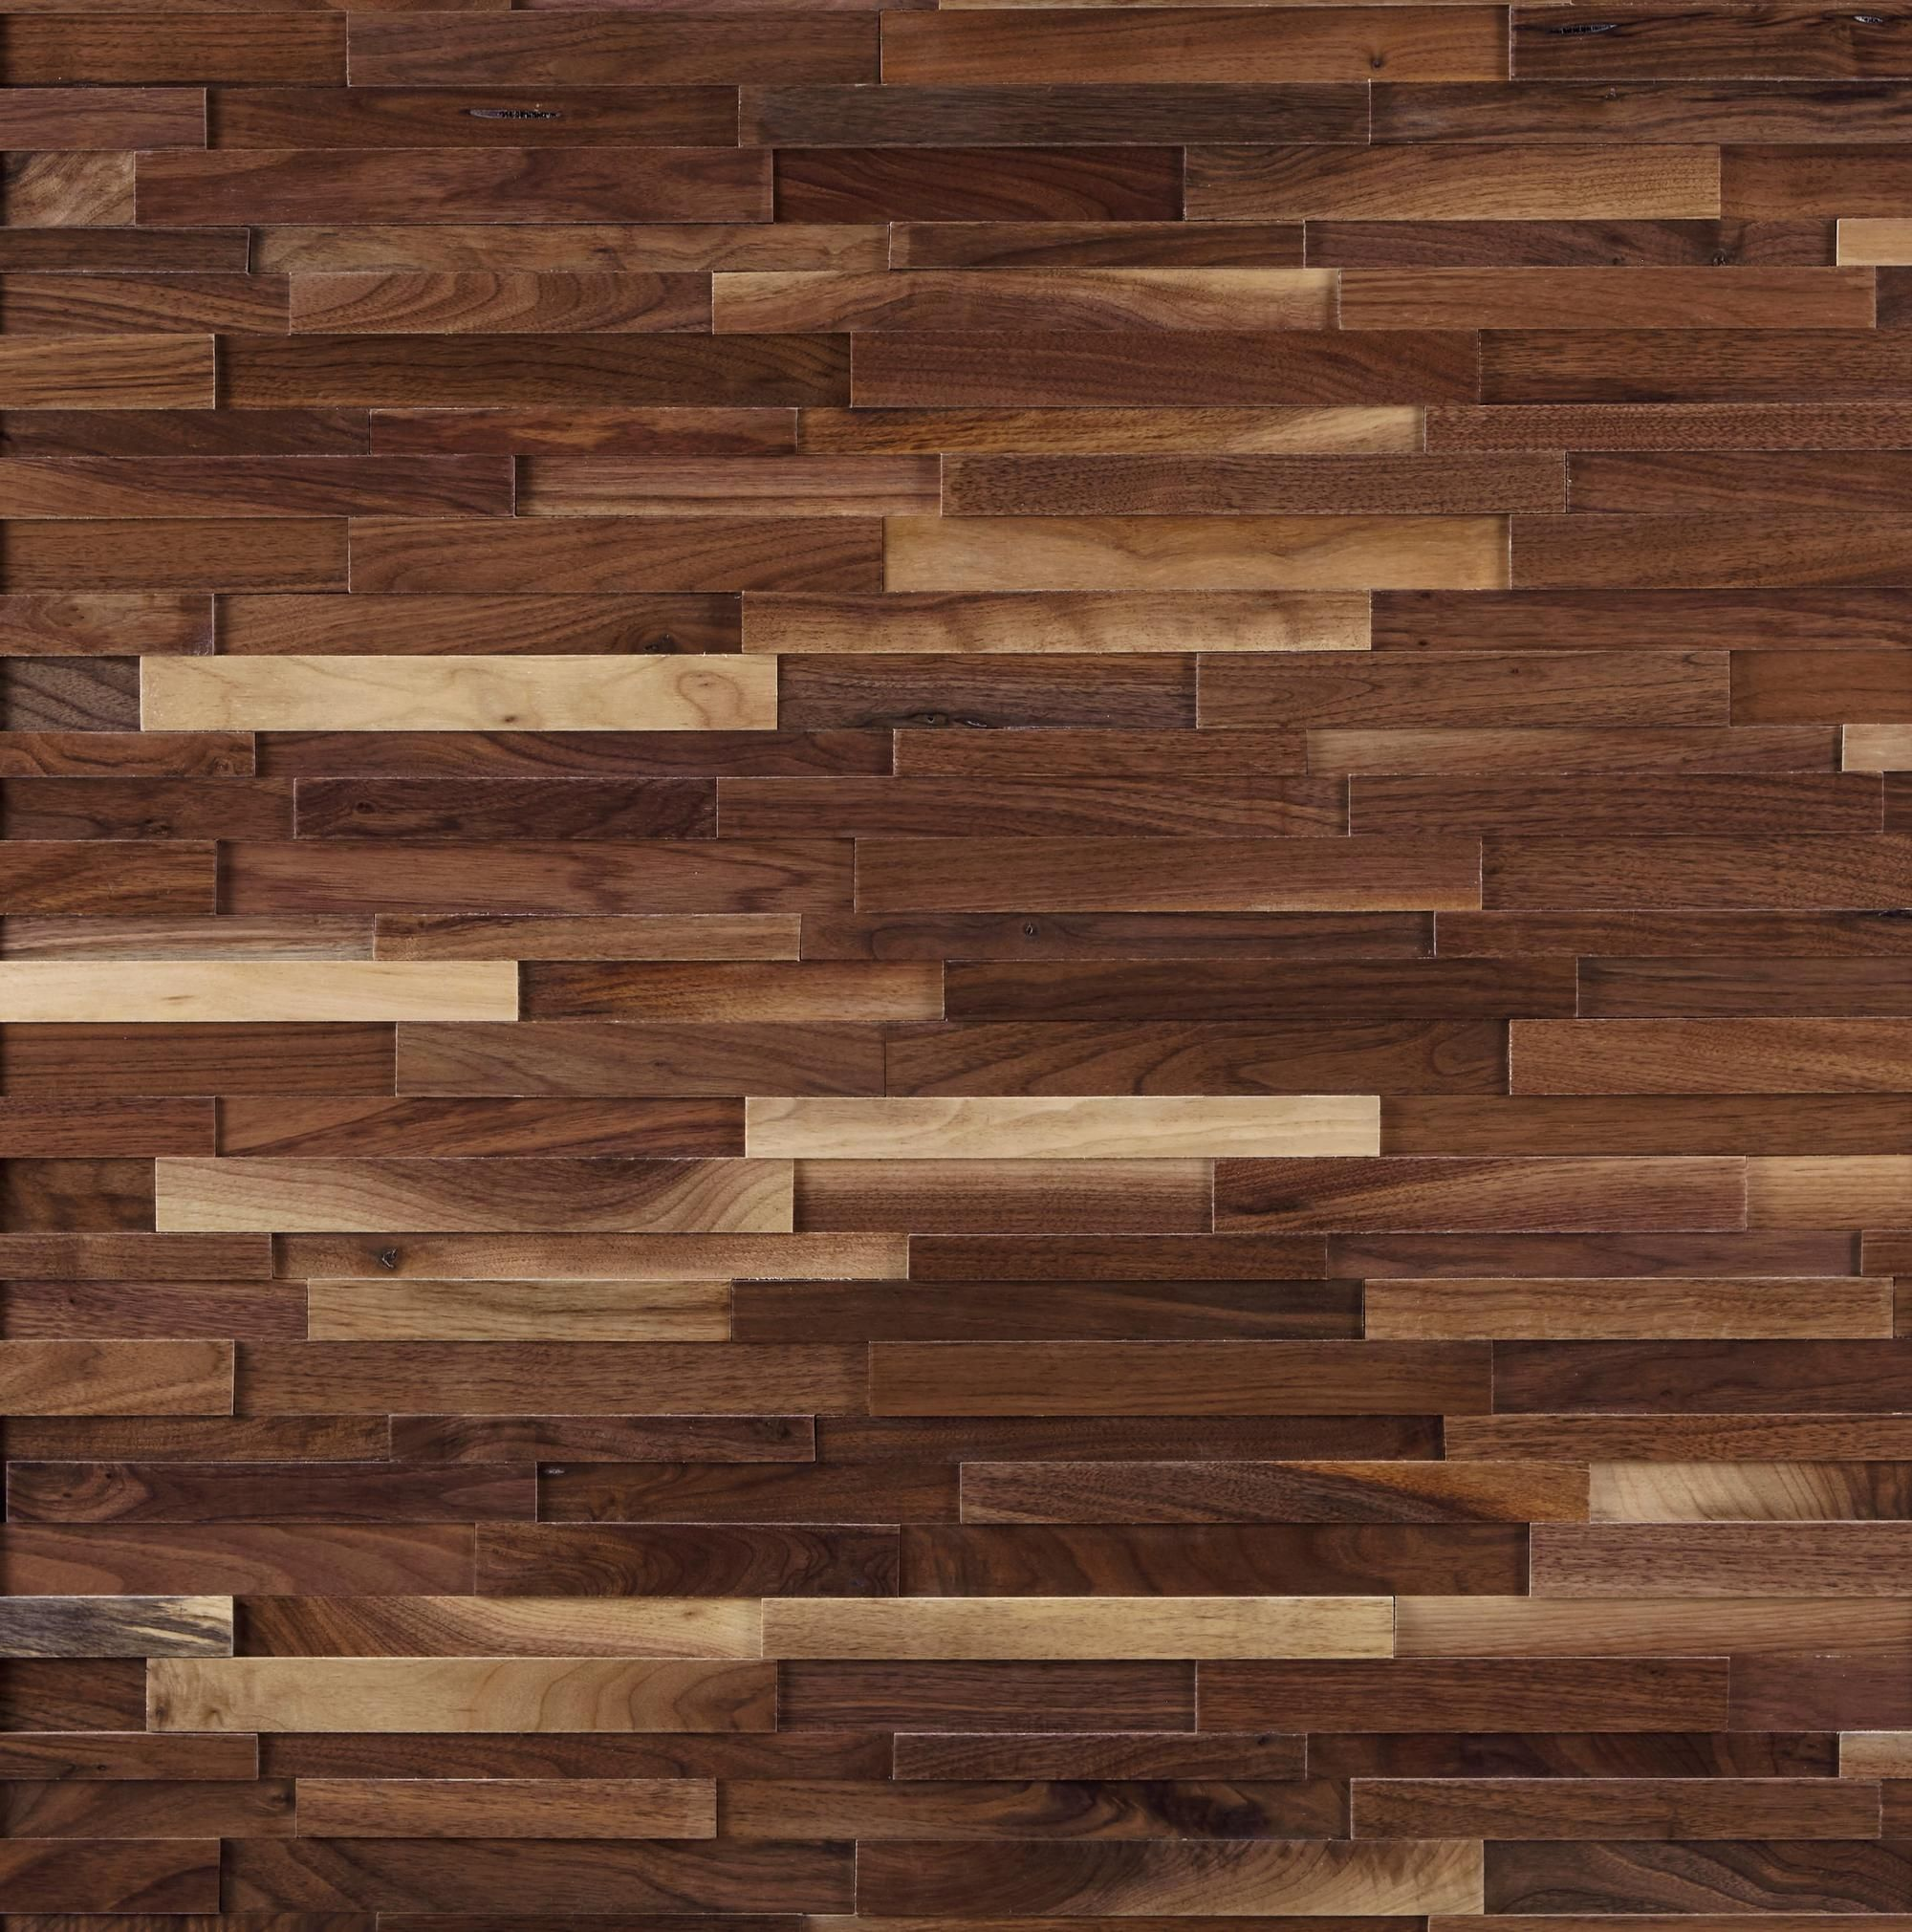 Black Walnut Hardwood Wall Plank Panel Wall Planks Floor Decor Wood Mosaic